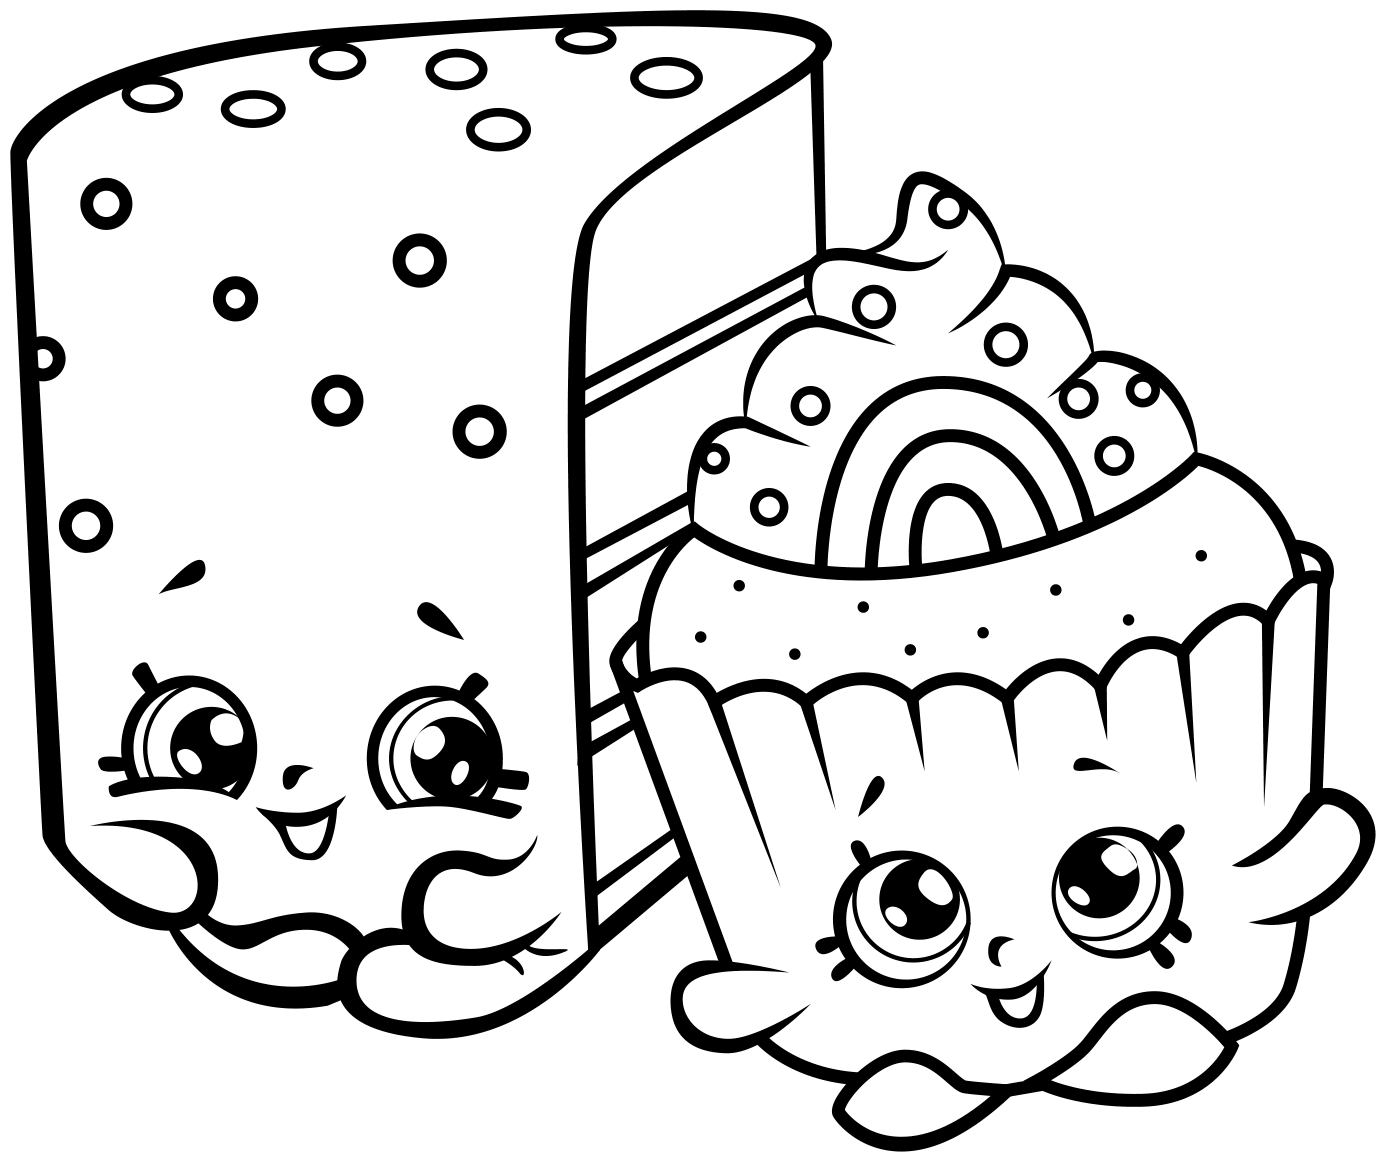 It is a graphic of Geeky Printable Shopkins Coloring Pages